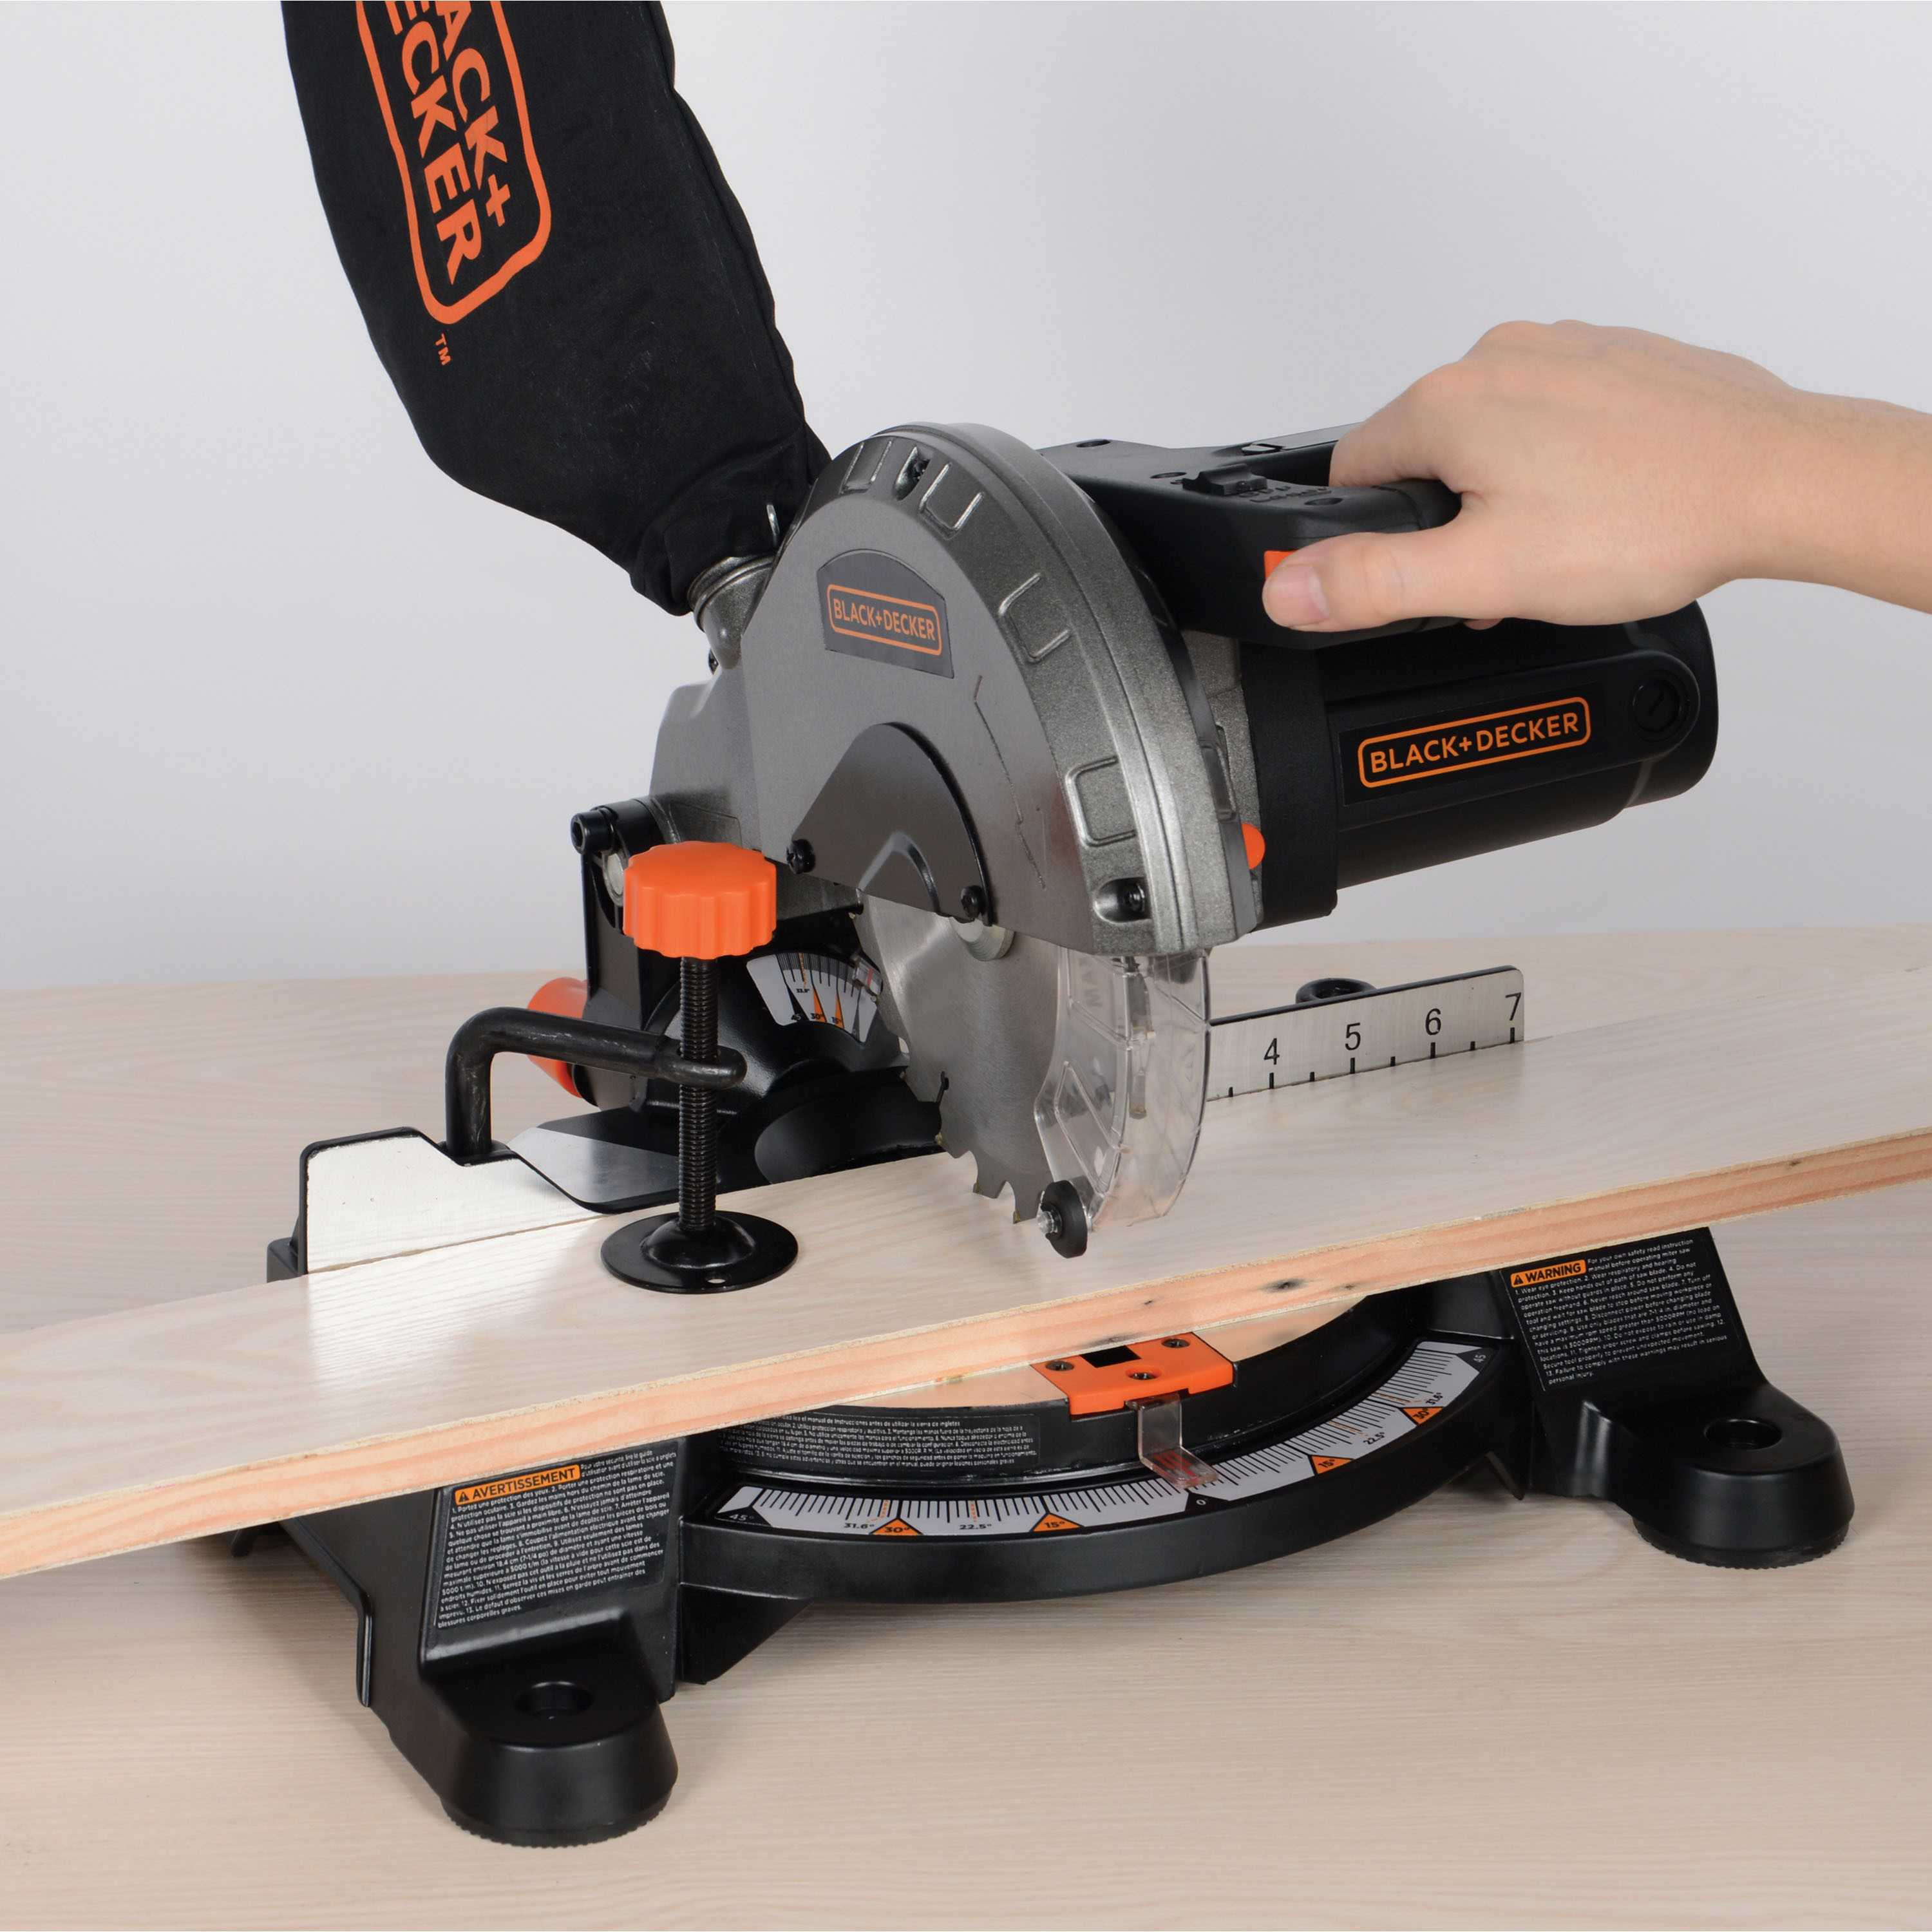 Black & Decker M1850BD 9 Amp 7-1/4 in. Compound Miter Saw